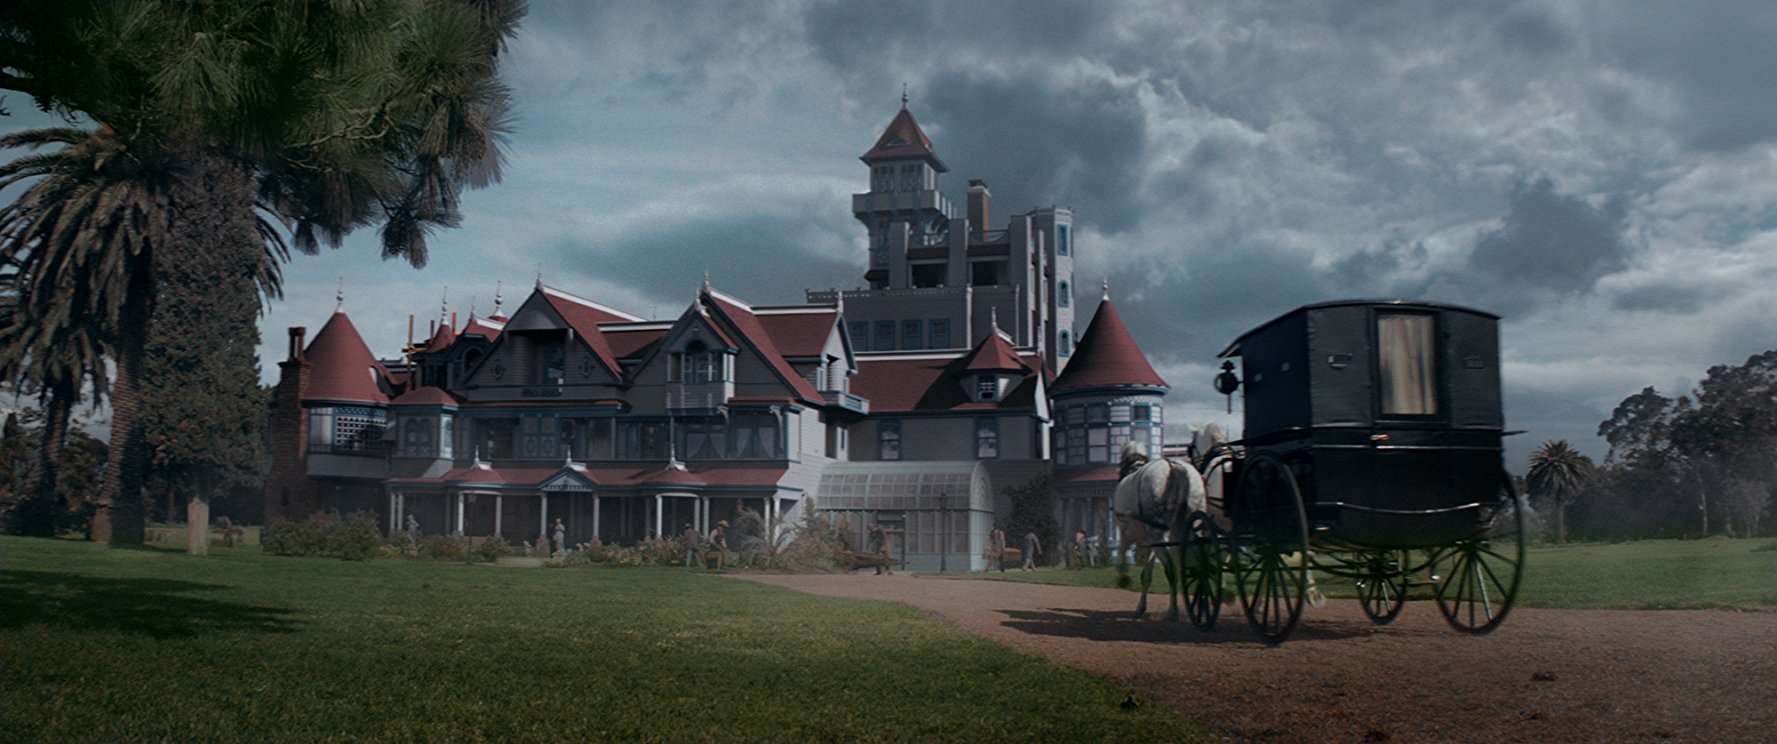 Horror Movie News: The Winchester Opens on February 2